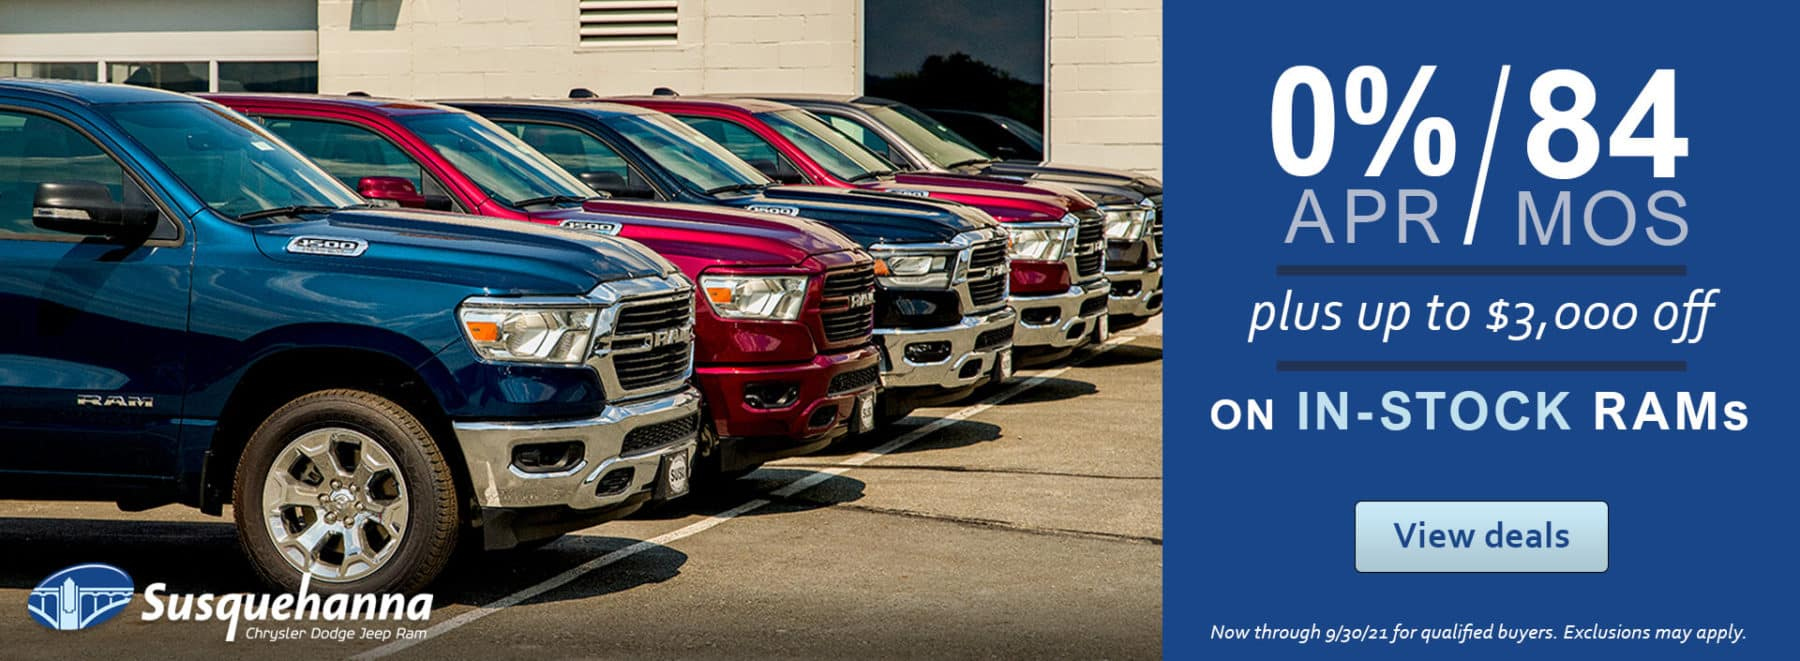 0apr for 84mos + up to $3,000 in-stock RAMs!